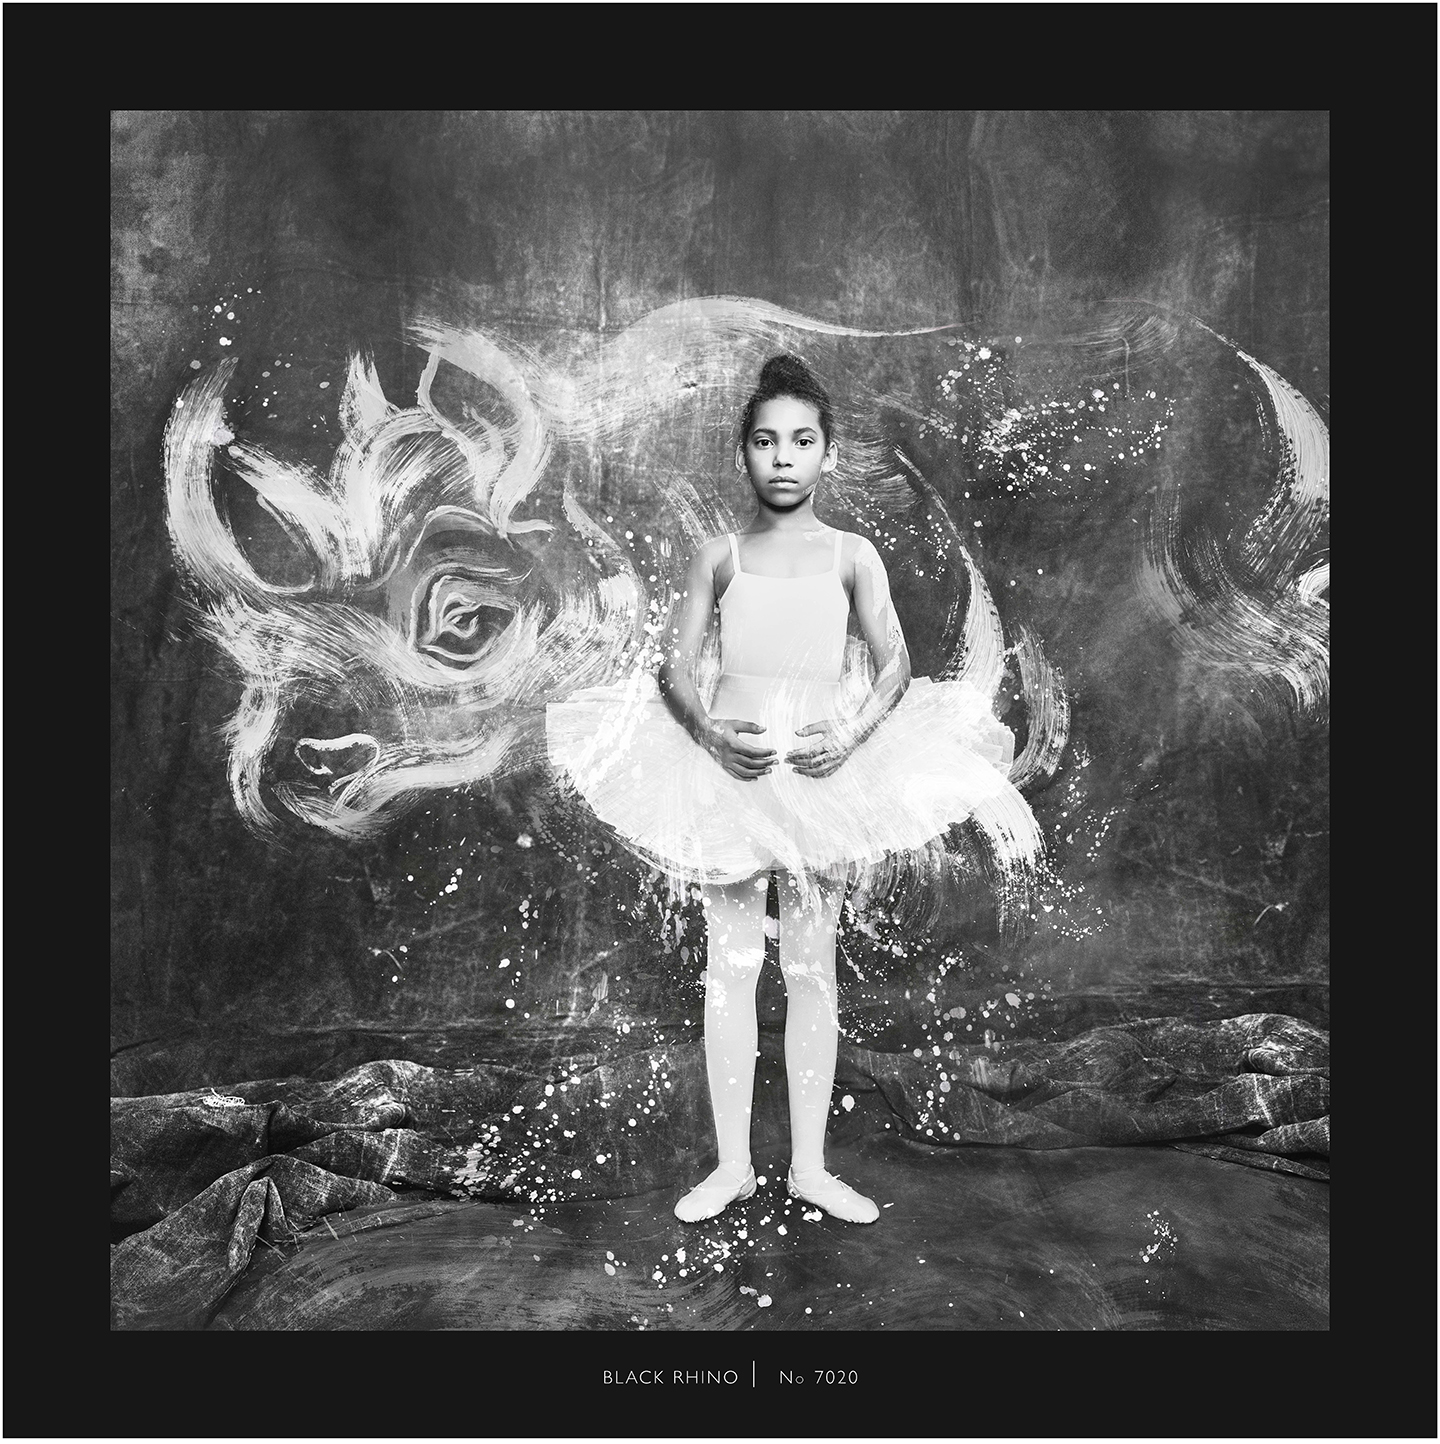 A young ballet dancer with a drawn rhino makes animal instinct black rhino photo art from Love Warriors